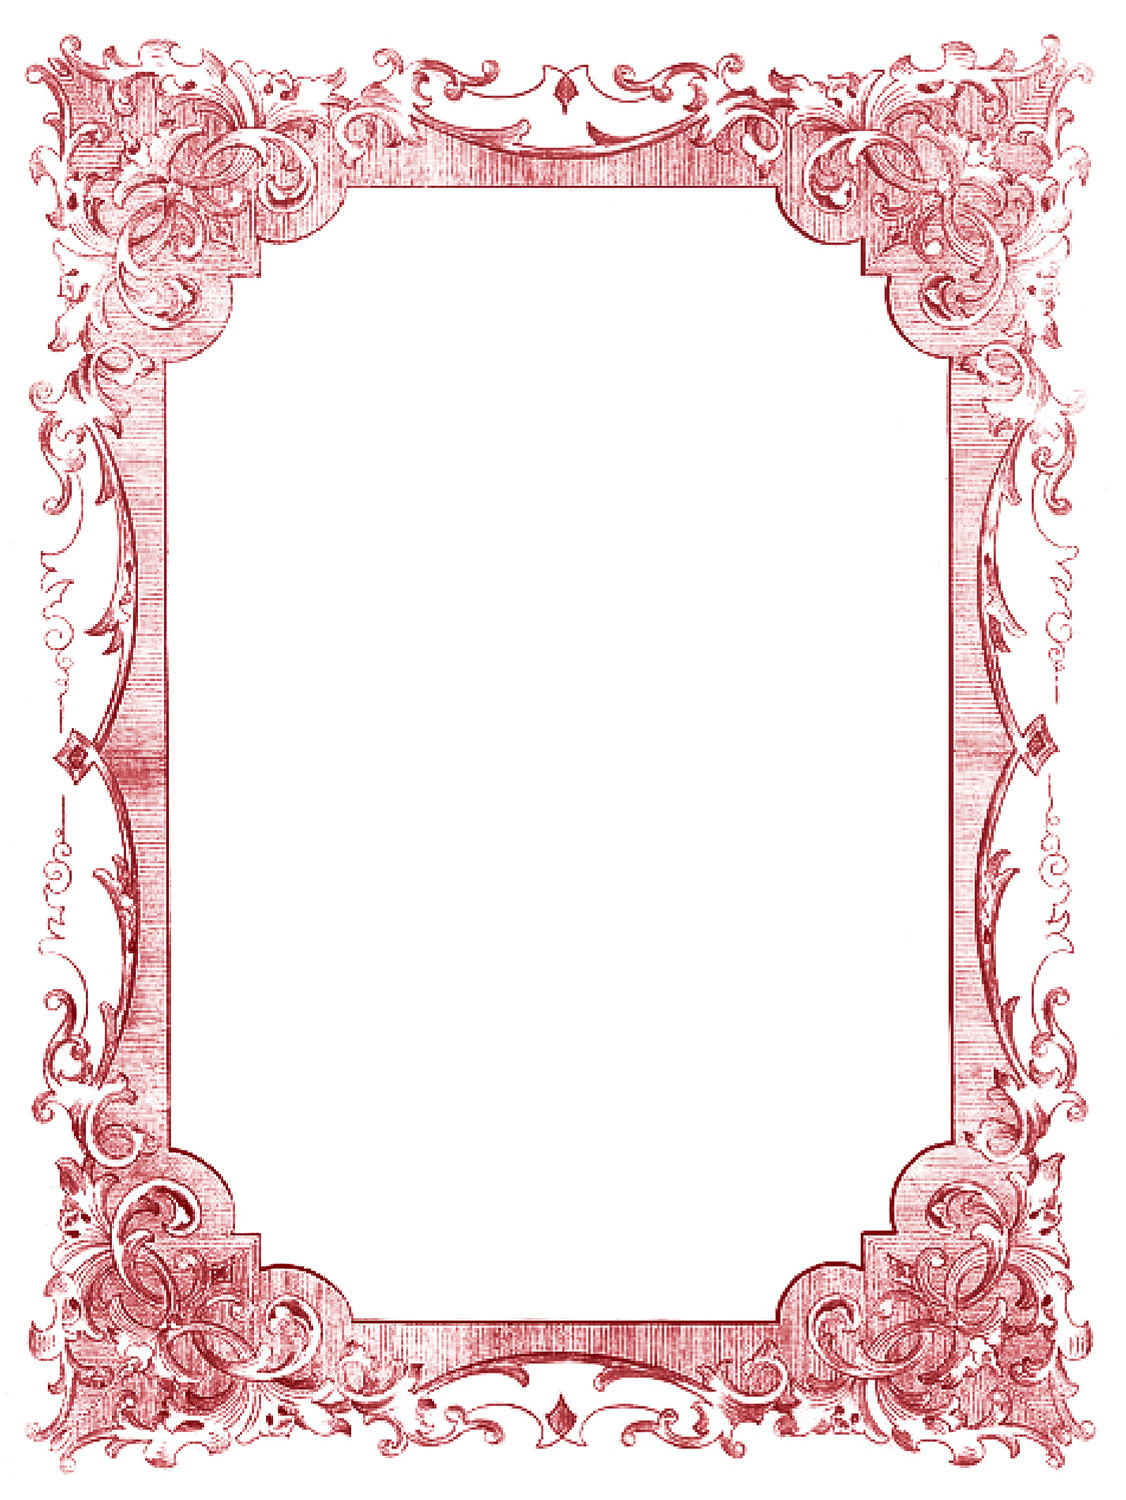 Vintage Clip Art   Romantic Frames   Christmas Colors   The Graphics